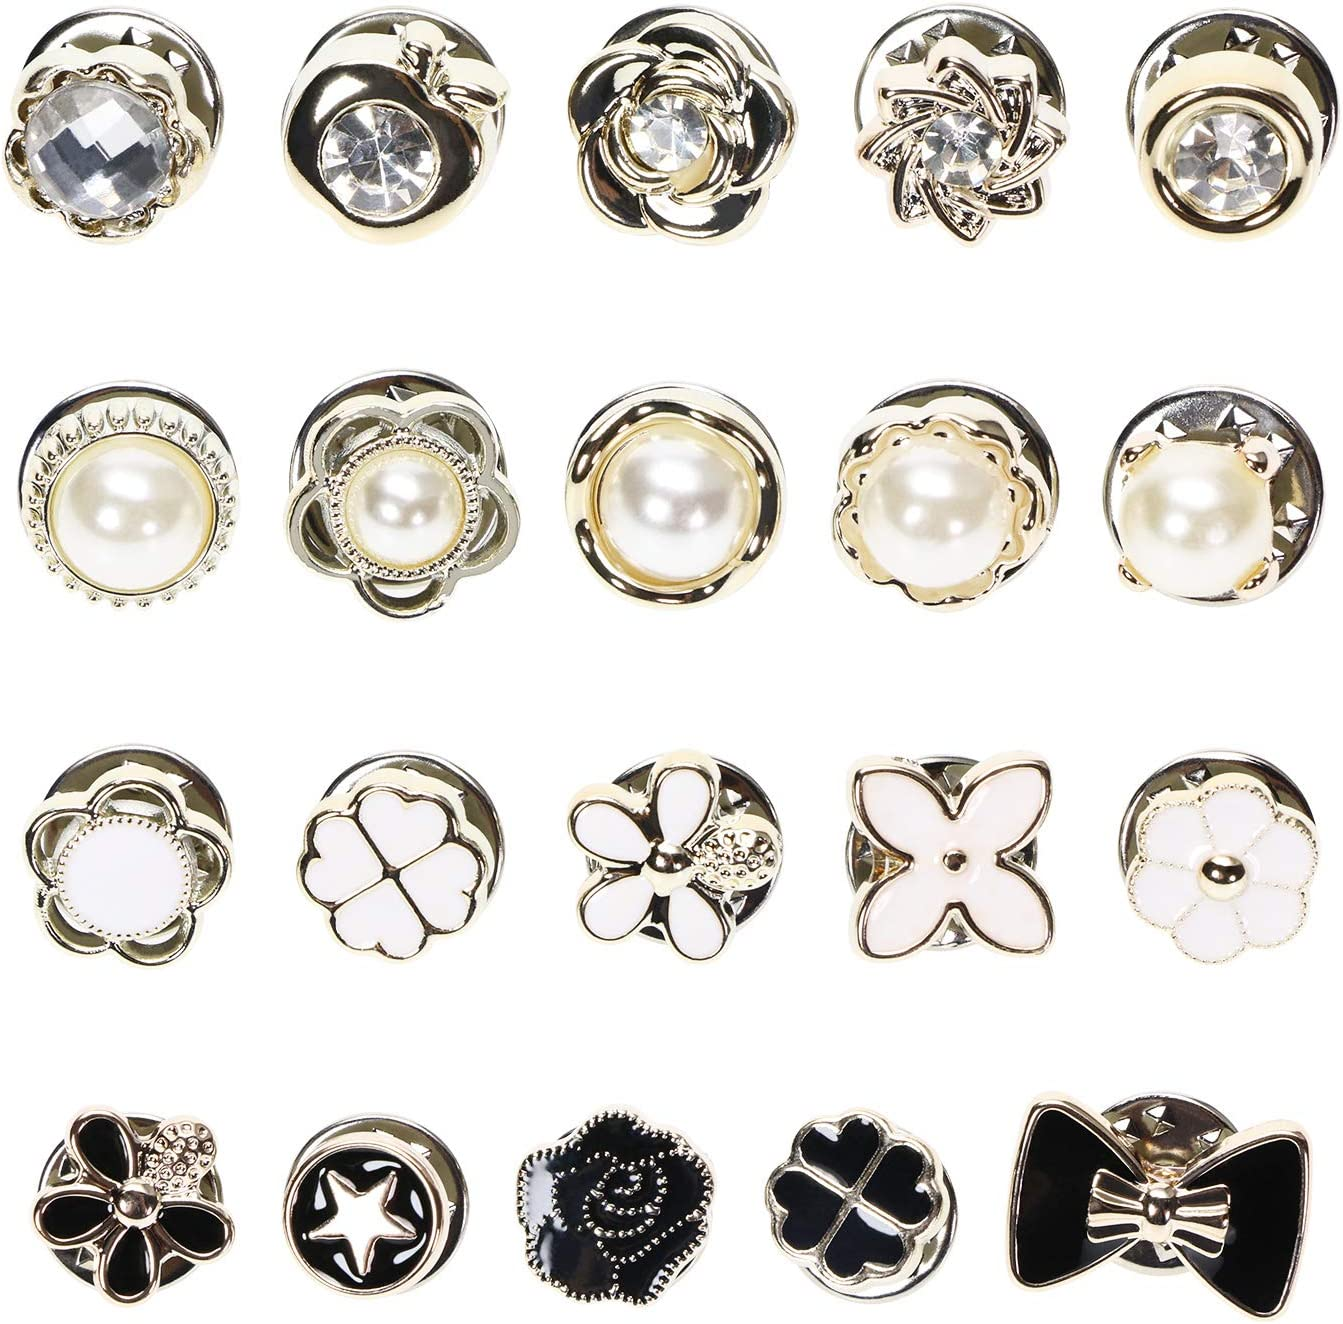 Penta Angel Women Shirt Brooch Pins 20Pcs Mini Cover Up Enamel Safety Lapel Pins Buttons Sweater Shawl Clips for Coat Dress Clothes Decoration